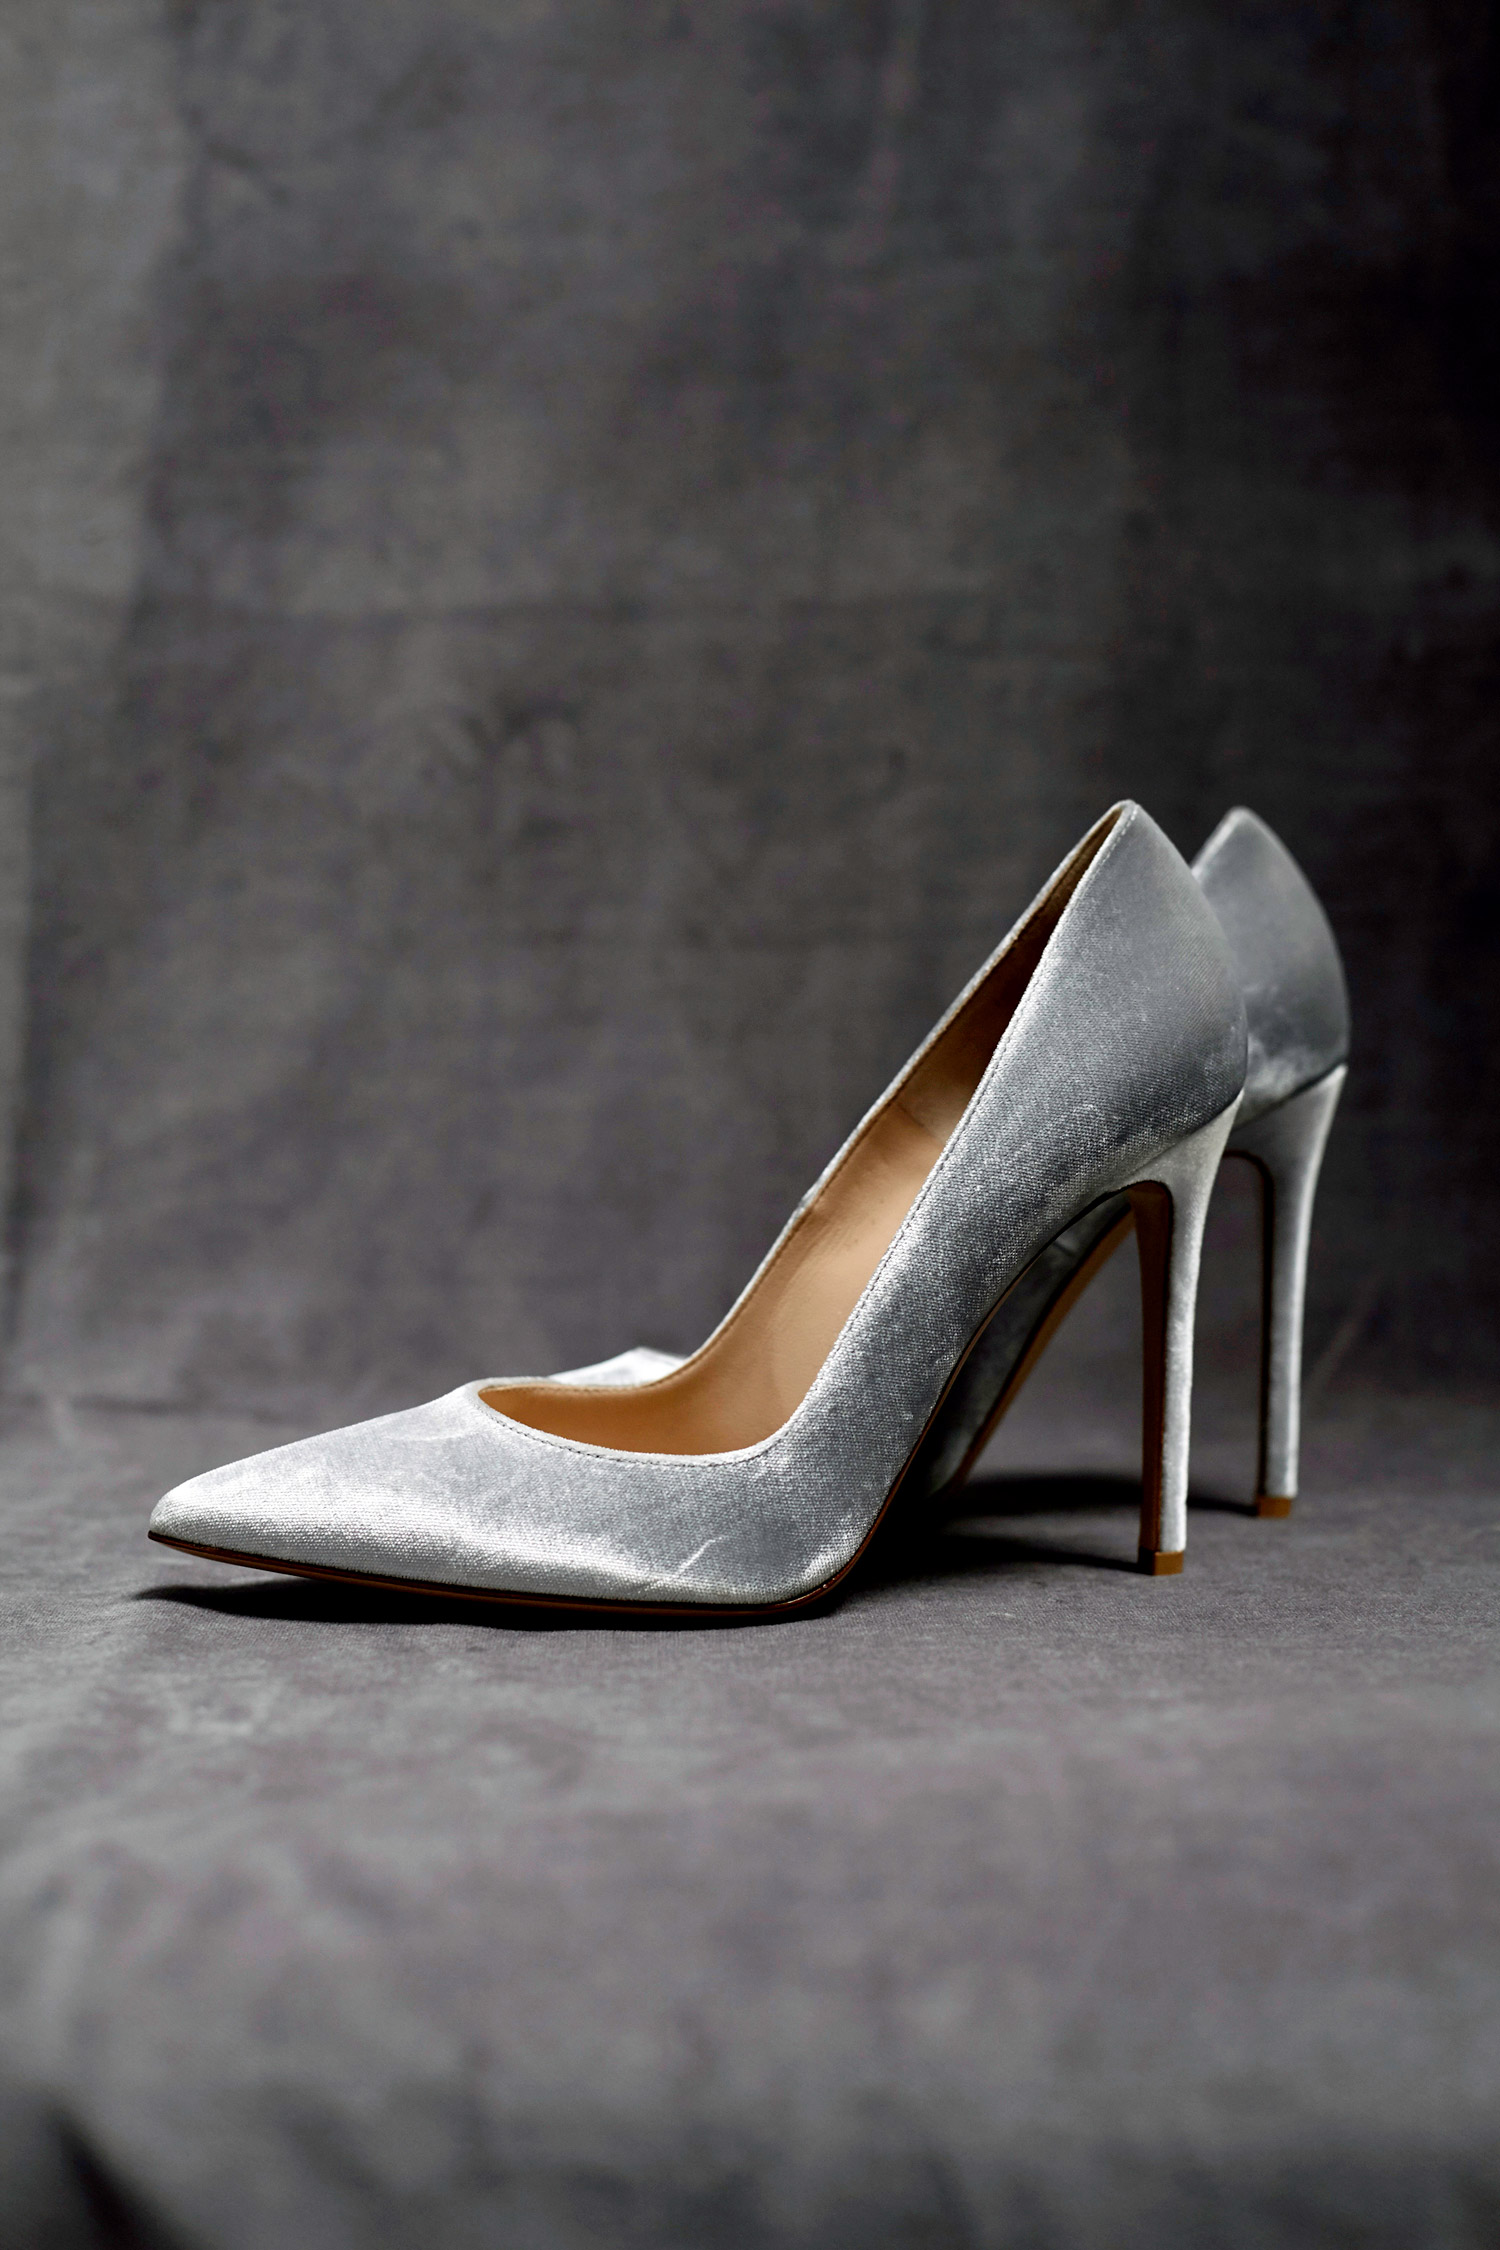 4c9afd517ed3a 40 Wedding Shoes That Are Worthy of an Instagram | Martha Stewart ...